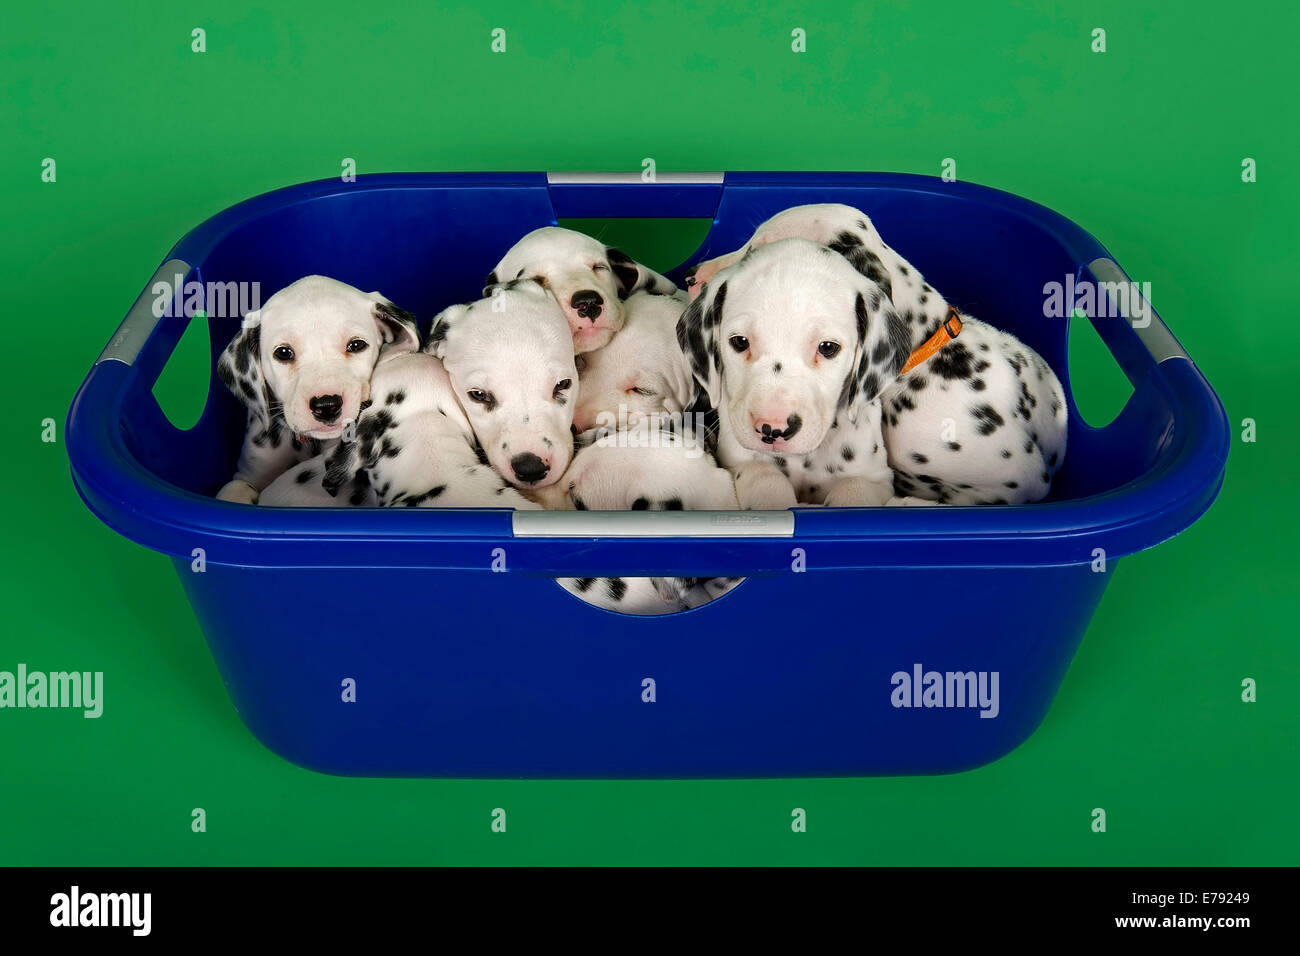 Dalmatian puppies, 6 weeks in a tub - Stock Image